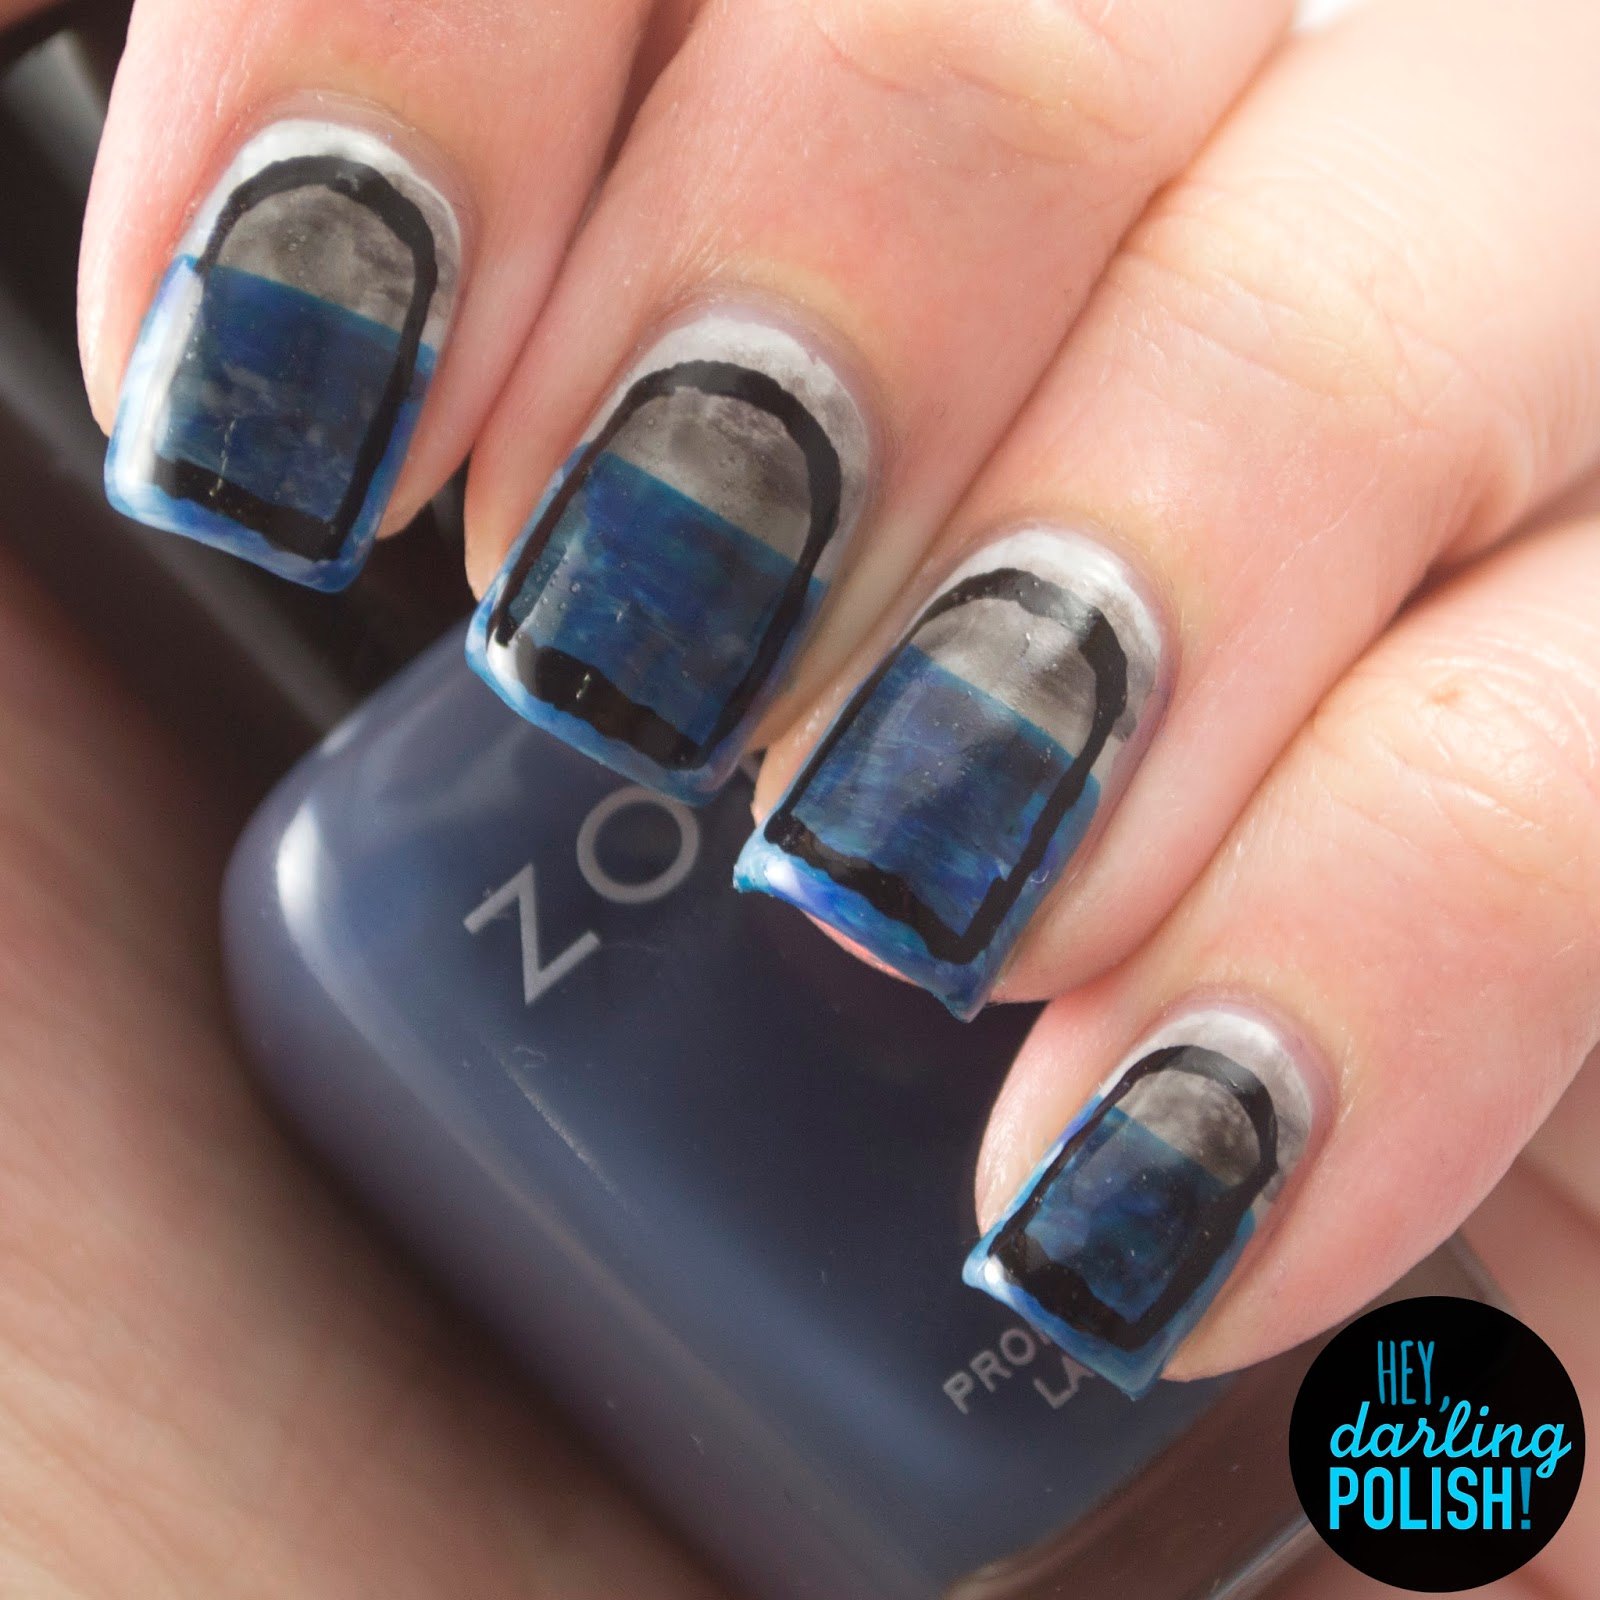 nails, nail art, nail polish, polish, the material, to weather the storm, hey darling polish, music monday, sea, blue, grey